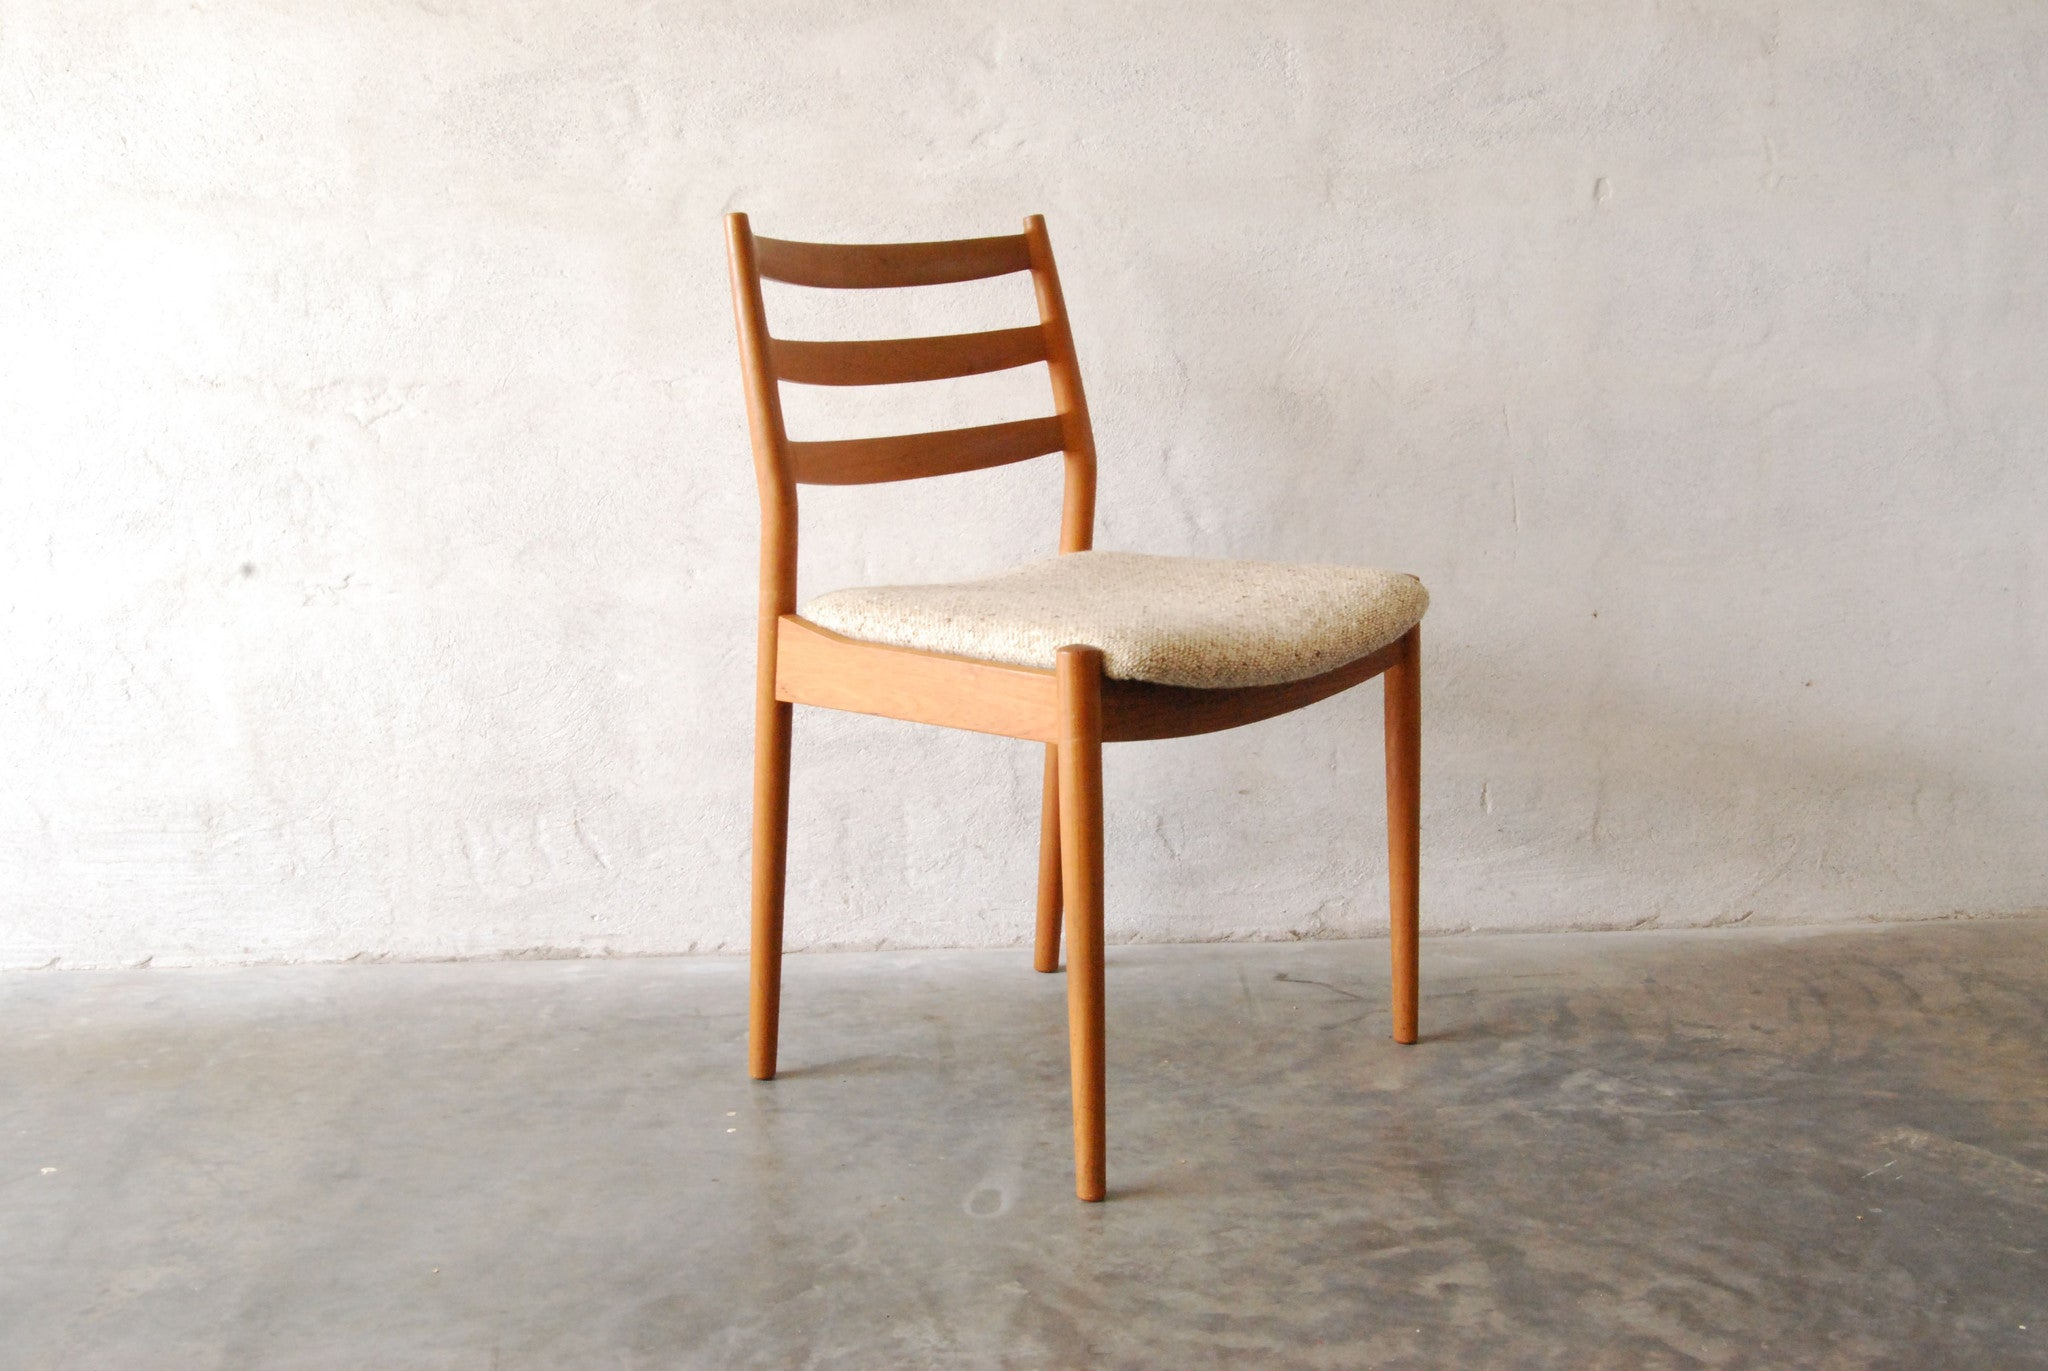 Pair of dining chairs by Arne Vodder for CADO